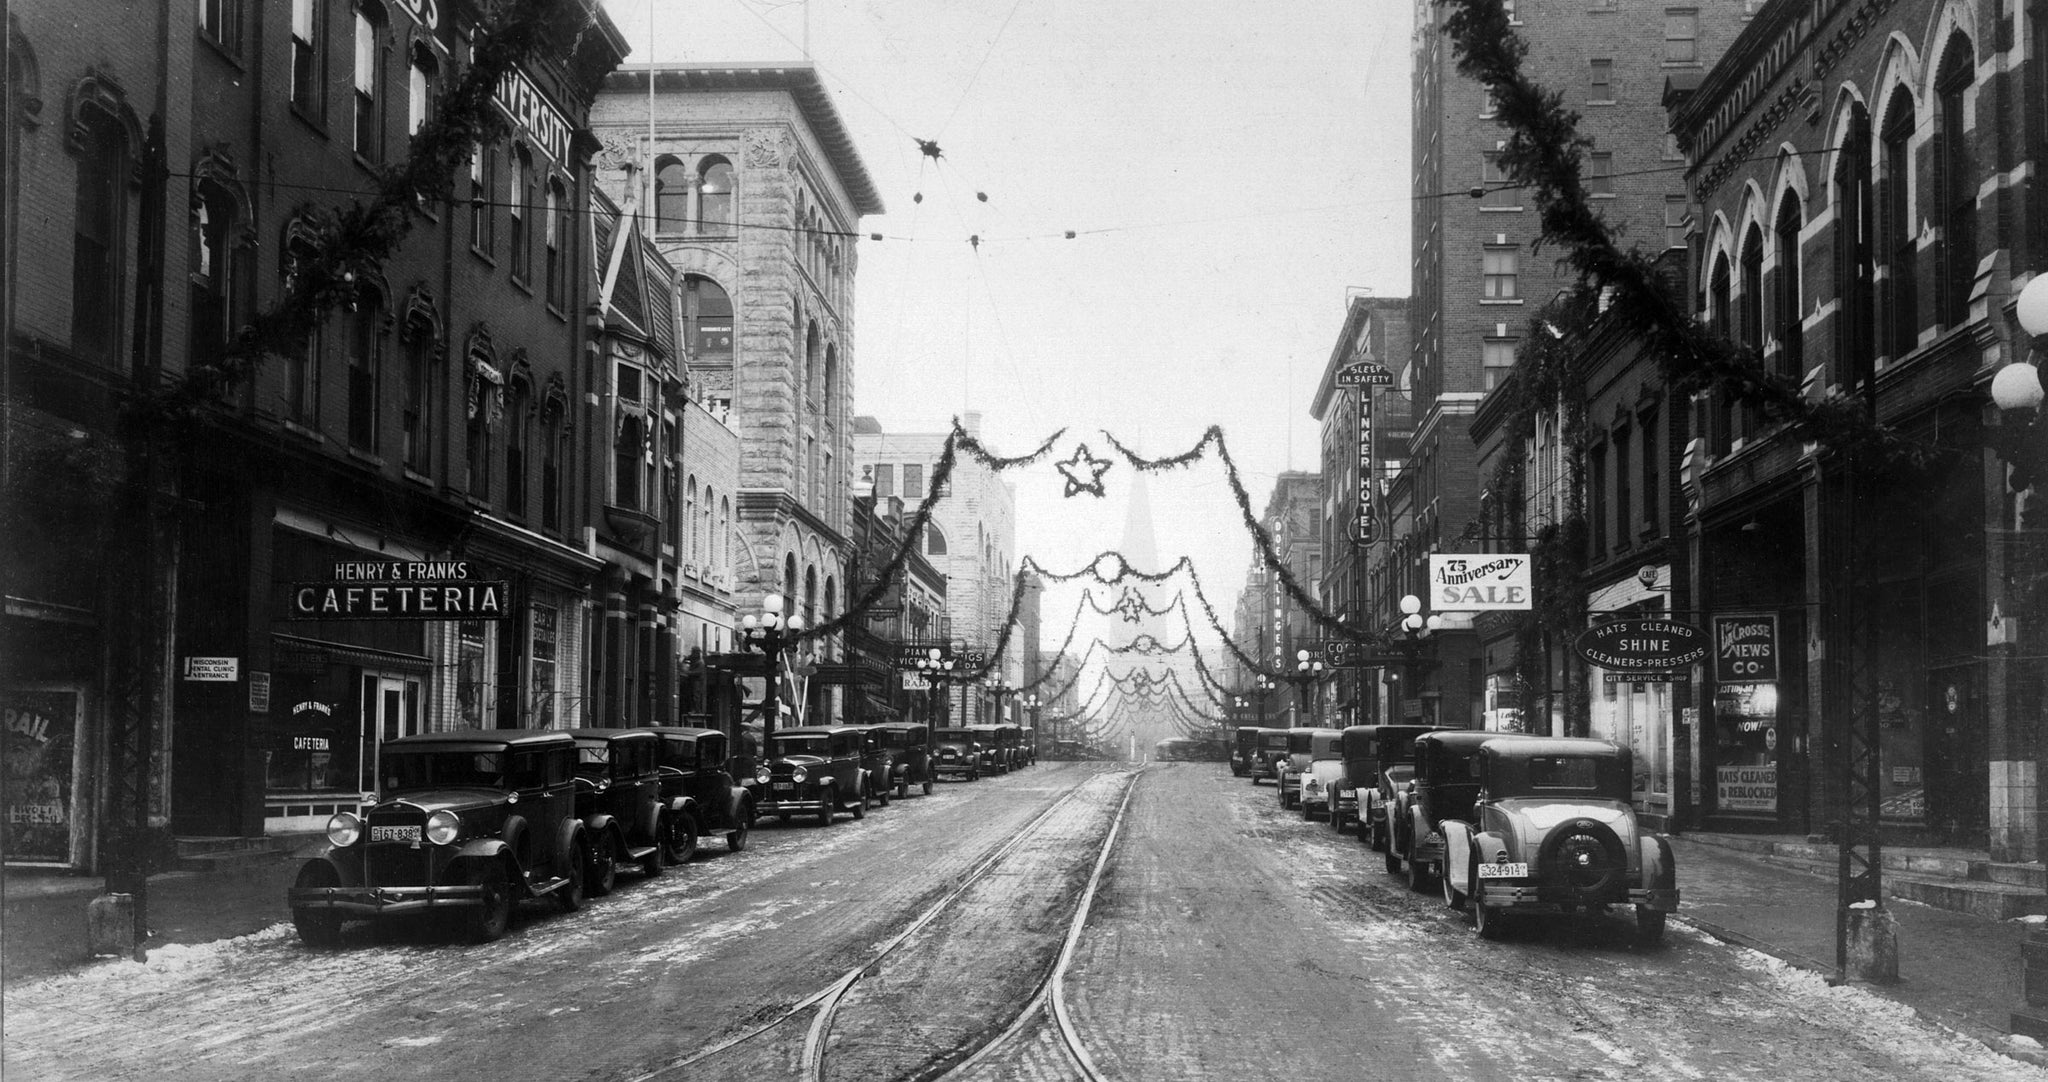 Looking east at the Christmas decorations on Main Street in 1930. -- LA CROSSE PUBLIC LIBRARY AND LA CROSSE COUNTY HISTORICAL SOCIETY / PC020-01-24-010